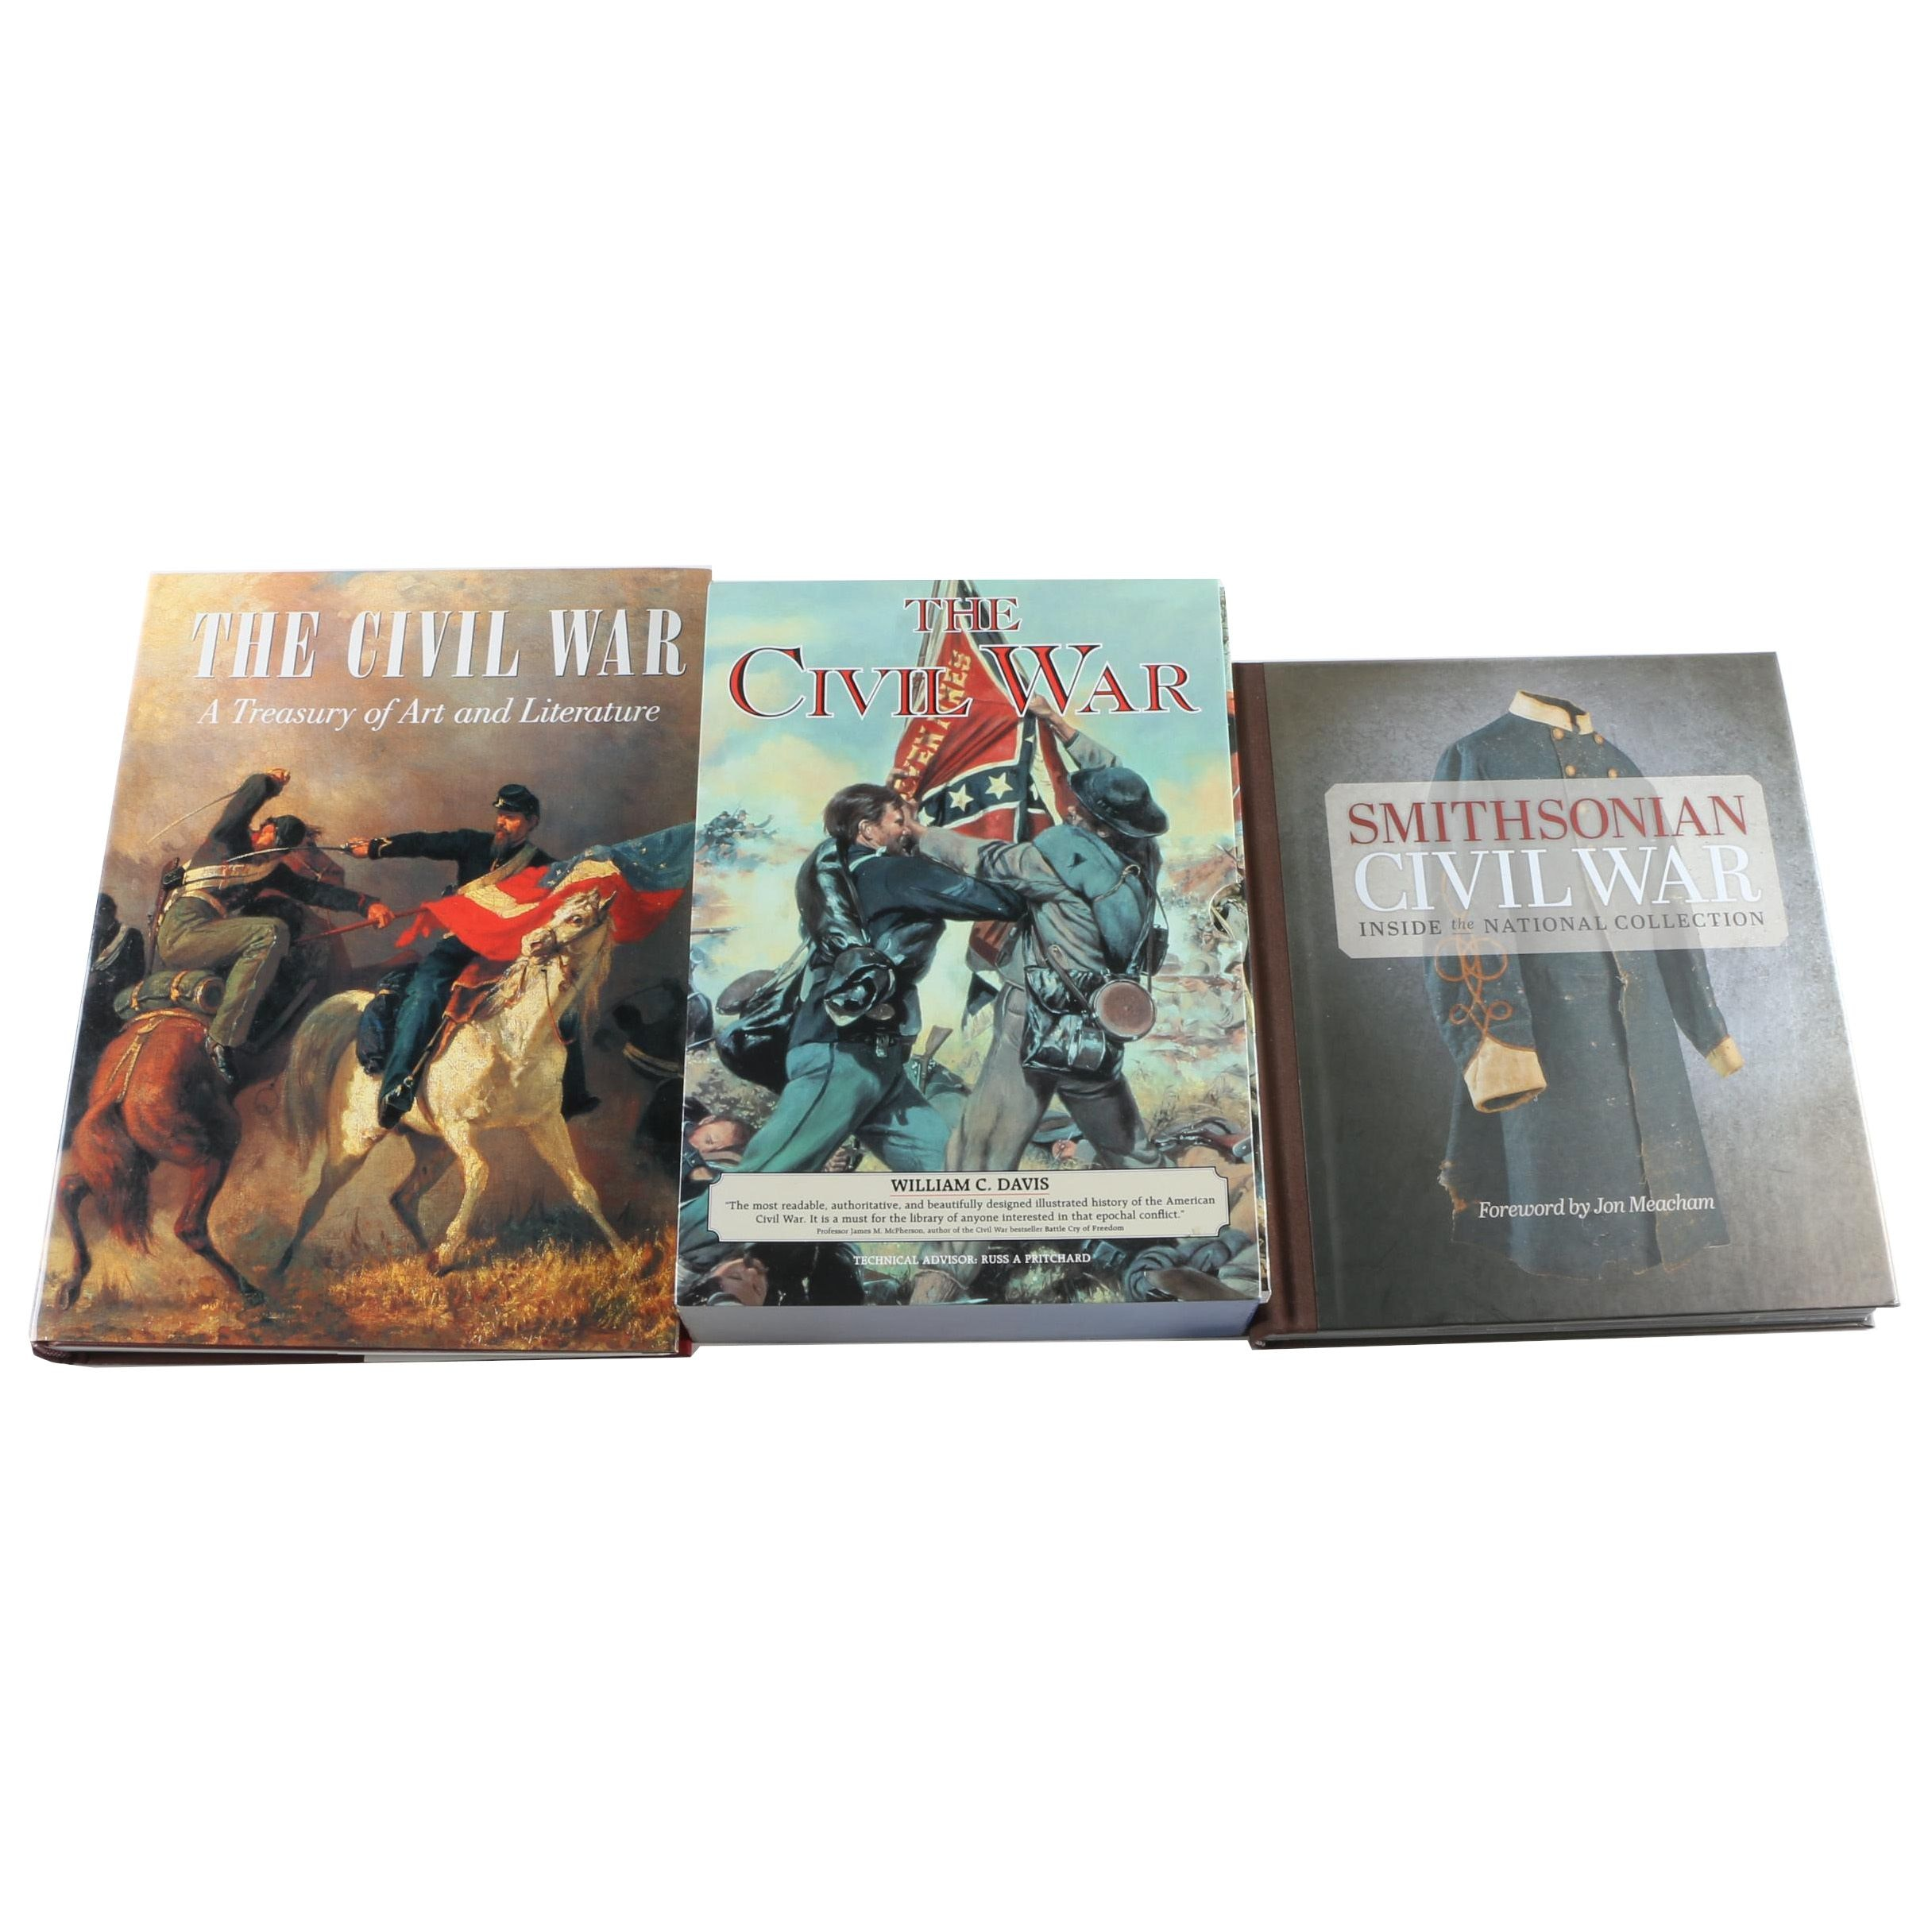 Assorted Hardcover Books on the Civil War